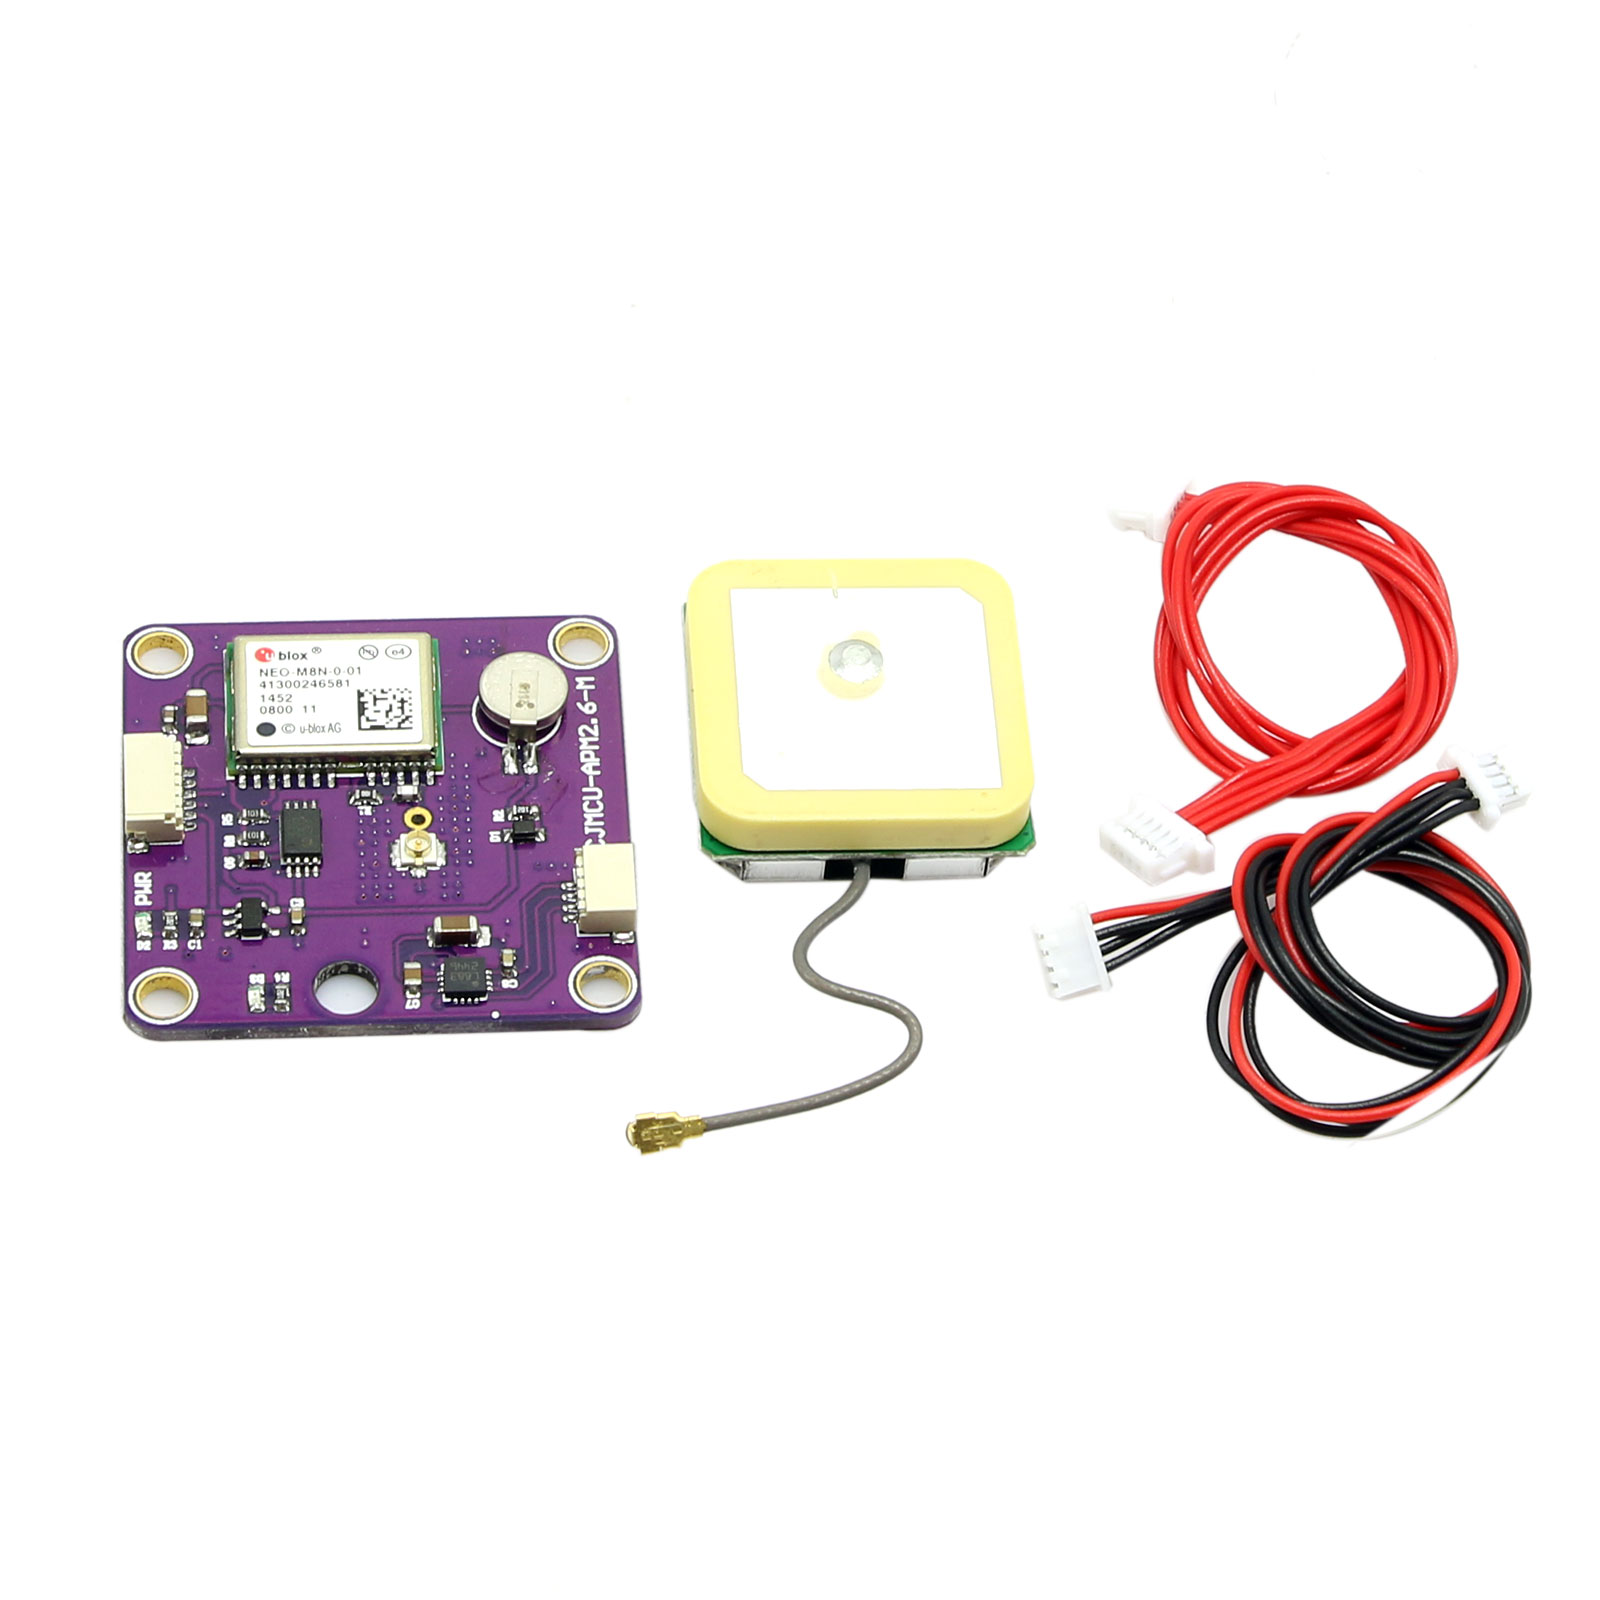 U blox NEO M8N Cconcurrent GNSS Modules GPS Moudle with 3 Axis Compass